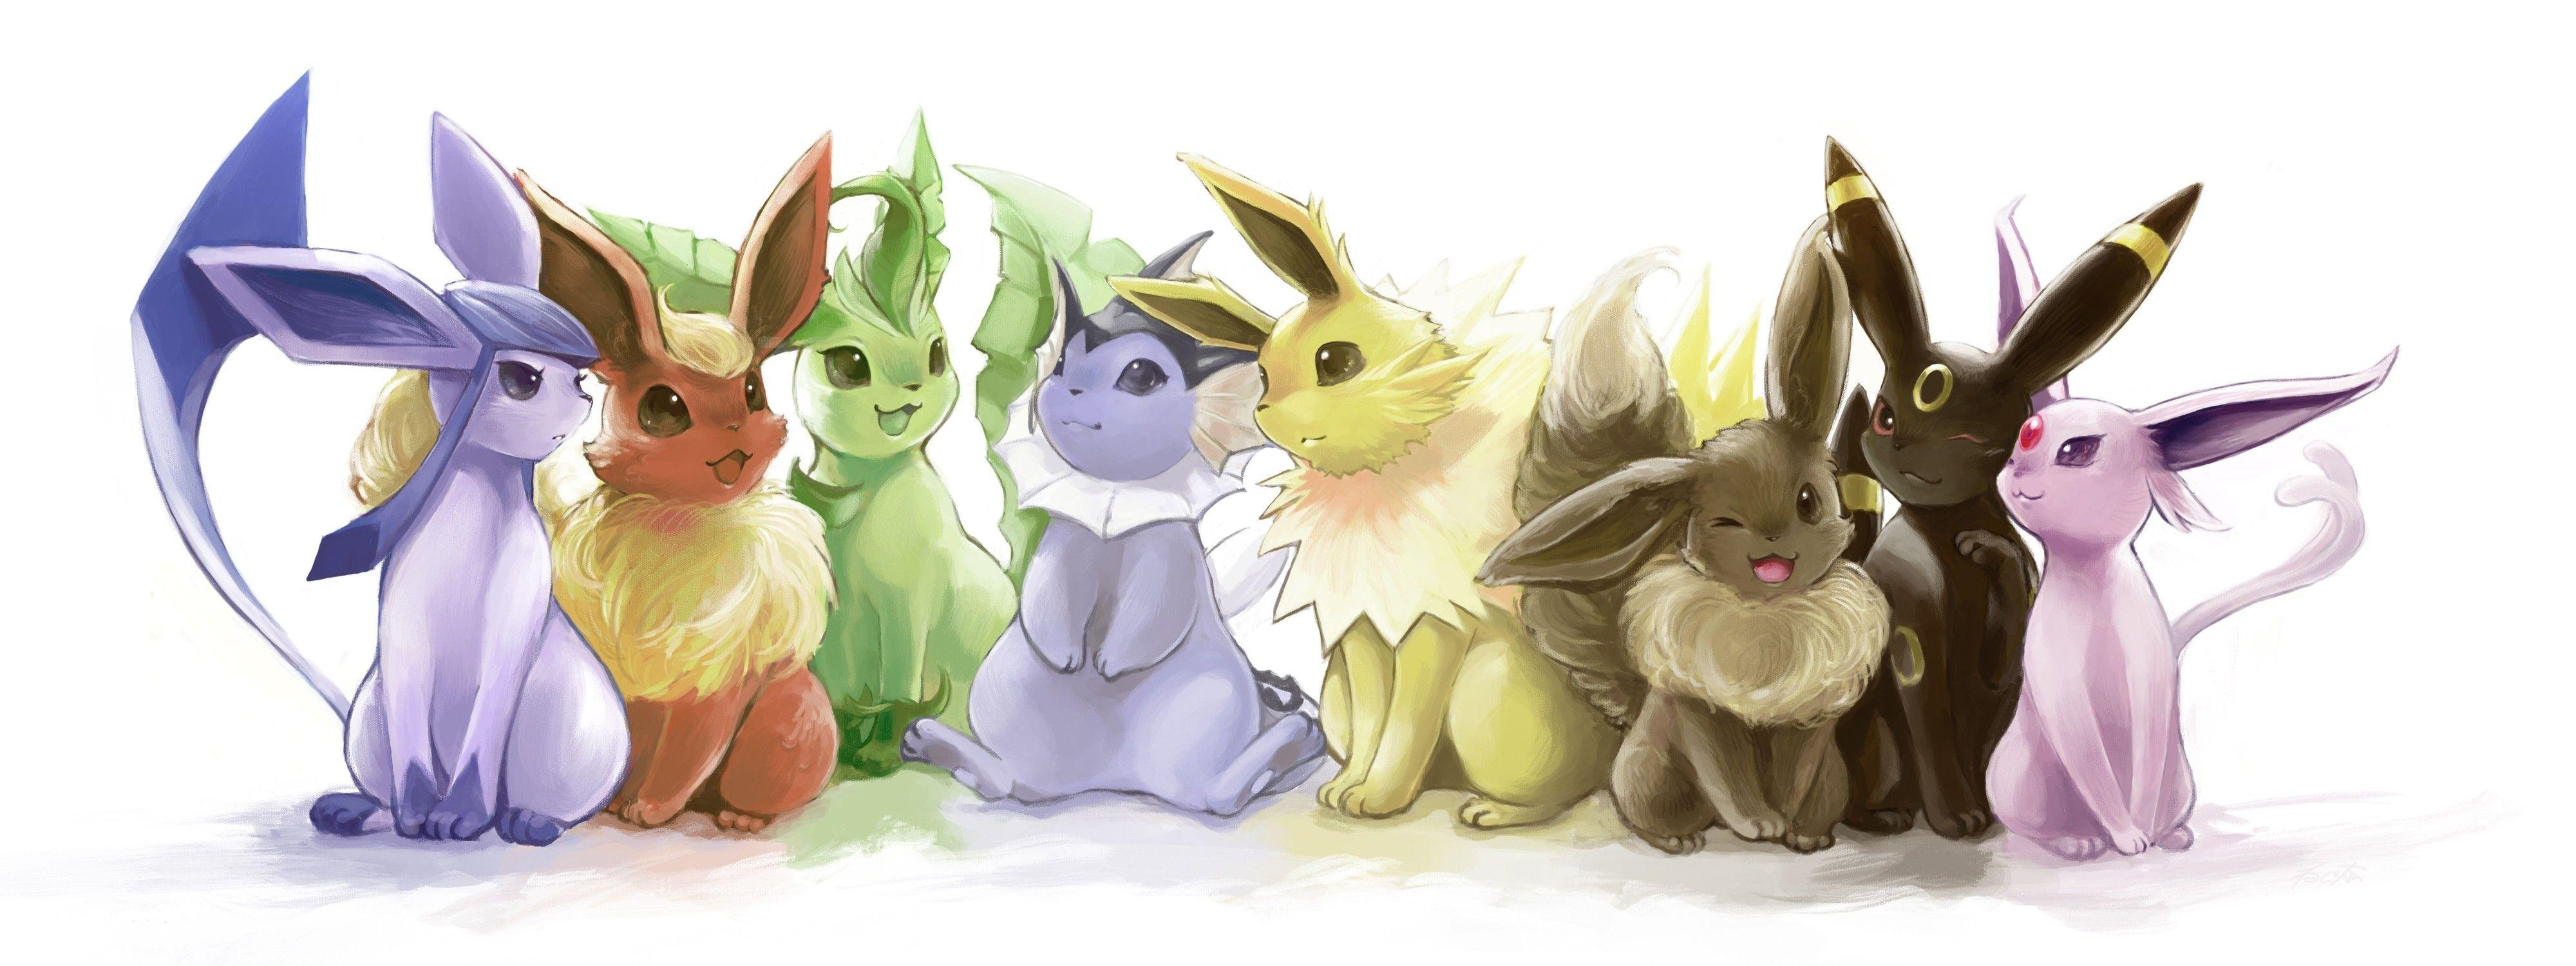 Download Wallpapers, Download 4096x1536 pokemon flareon eevee espeon